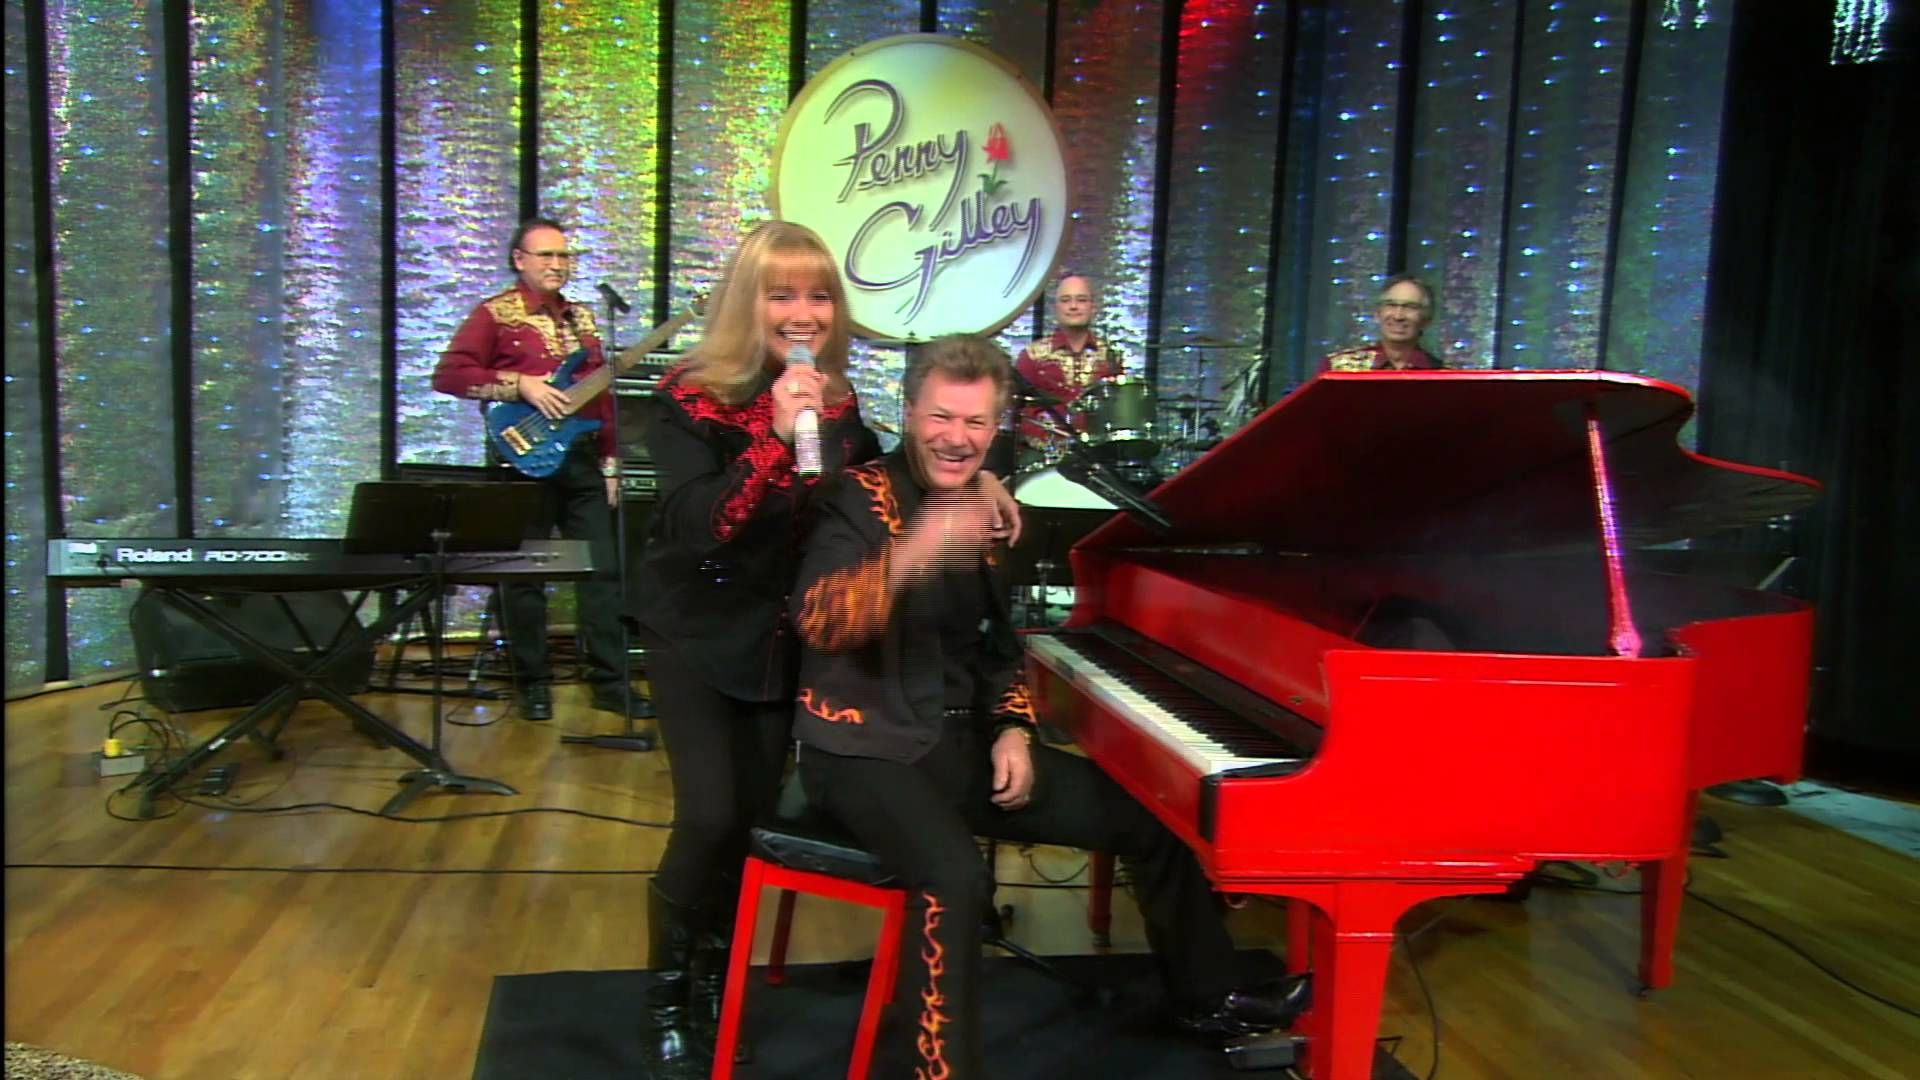 Penny Gilley Tv Show Guest Mickey Gilley Full Show Tv Shows Full Show Country Music